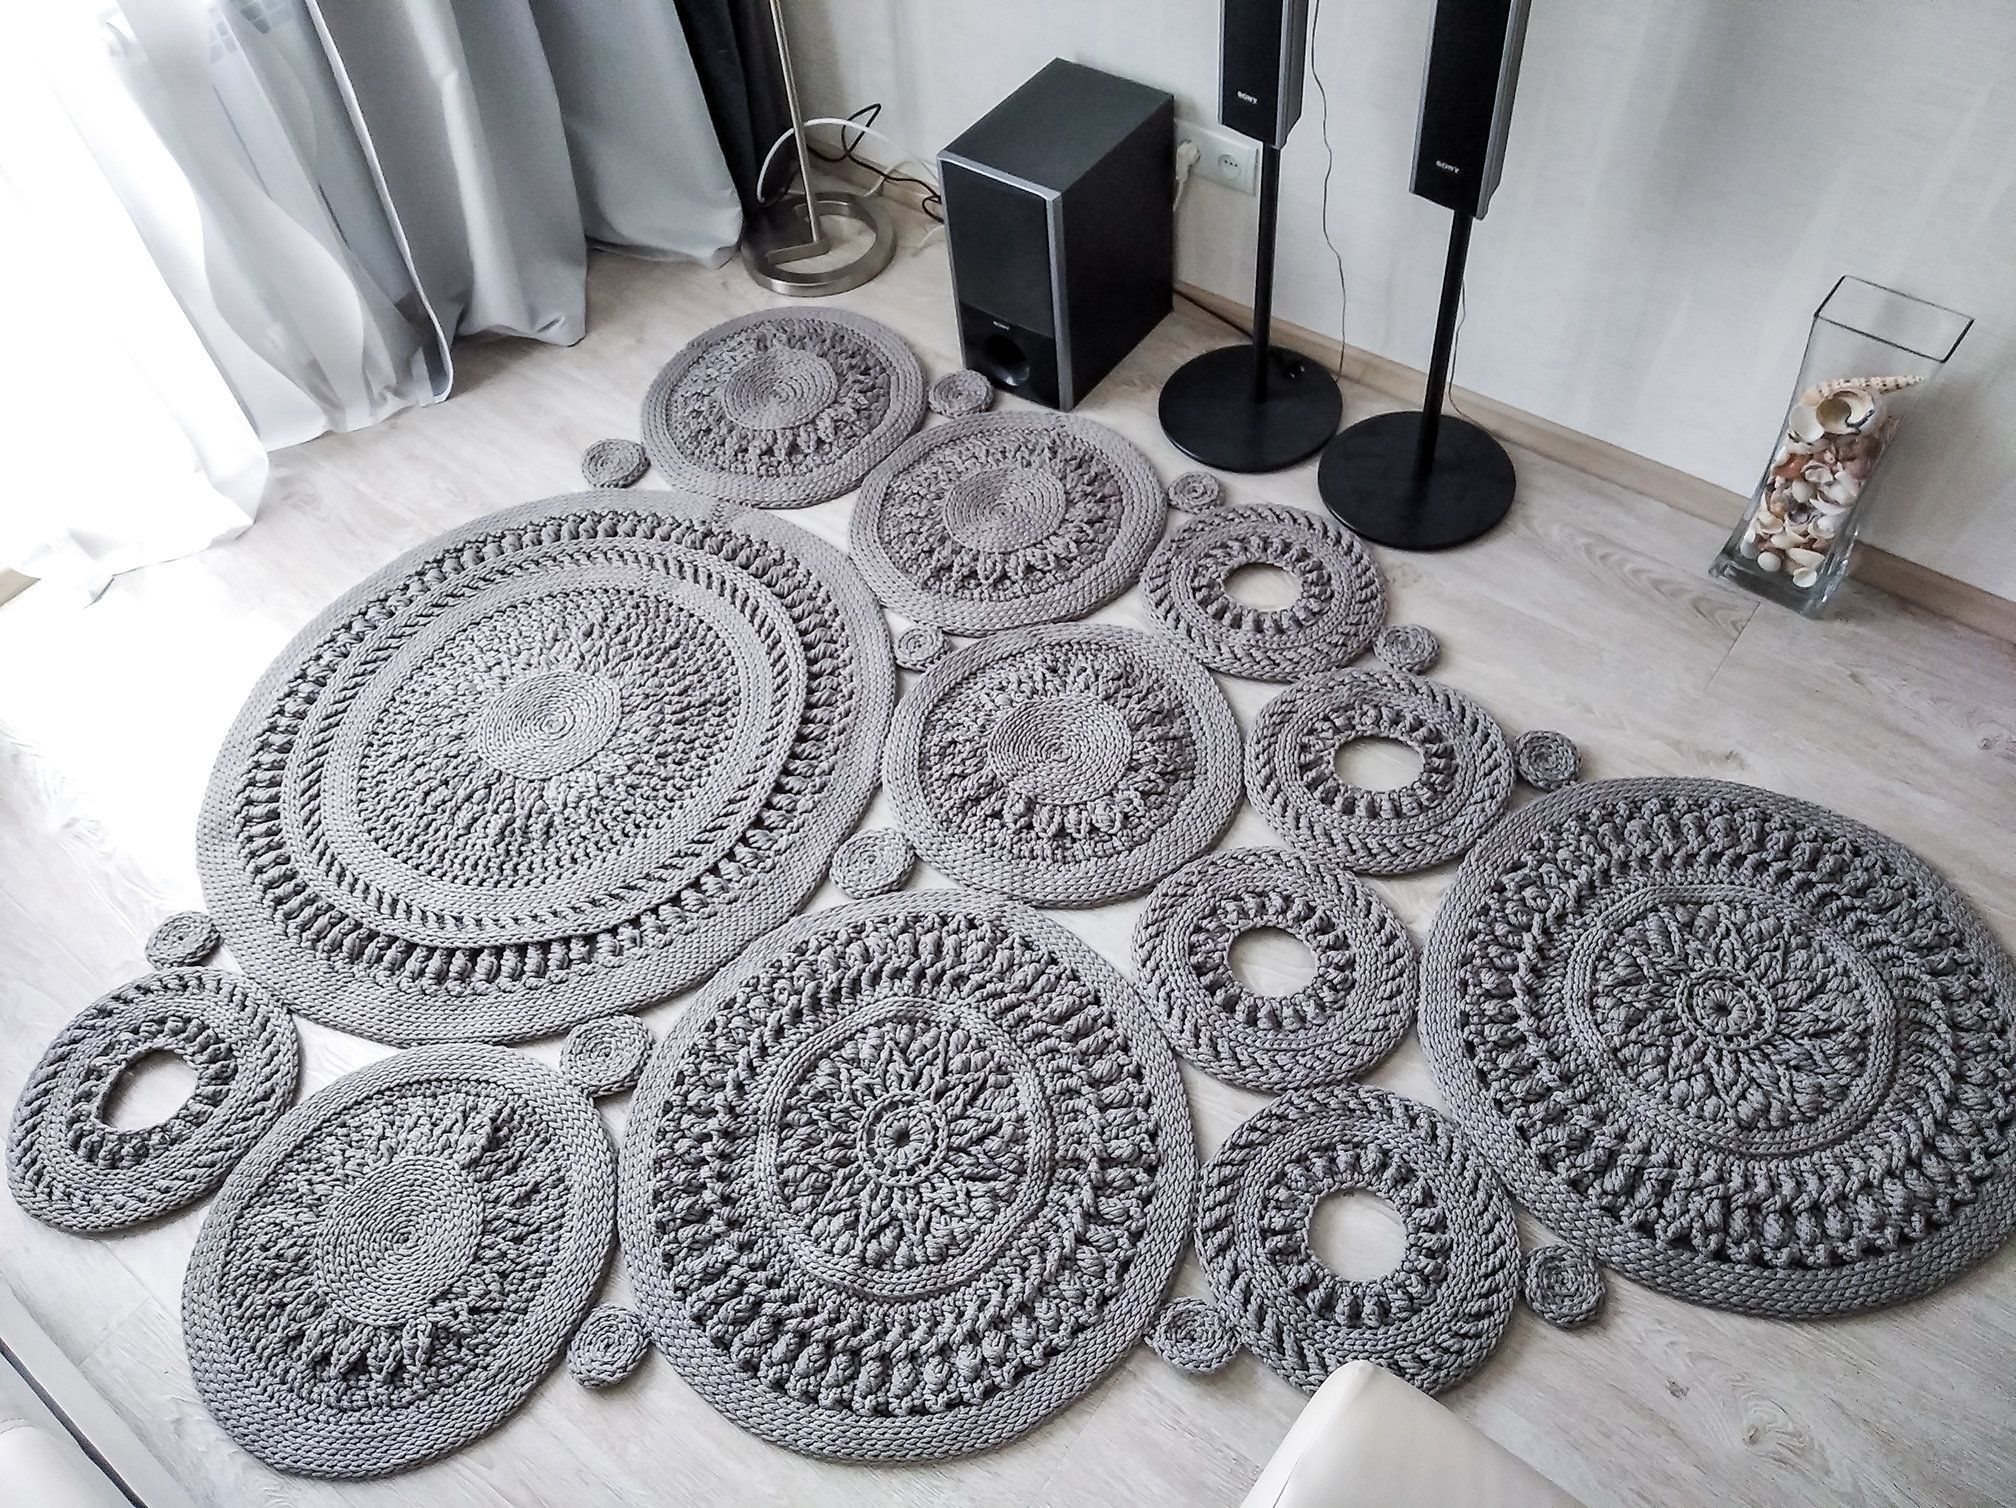 Big Crochet Area Rug 98 1 2 H 76 3 4 In Doily Rug Yarn Lace Mat Rustic Floor Decor By Lacemats Lacecoins In 2020 Rustic Flooring Rugs Doily Rug